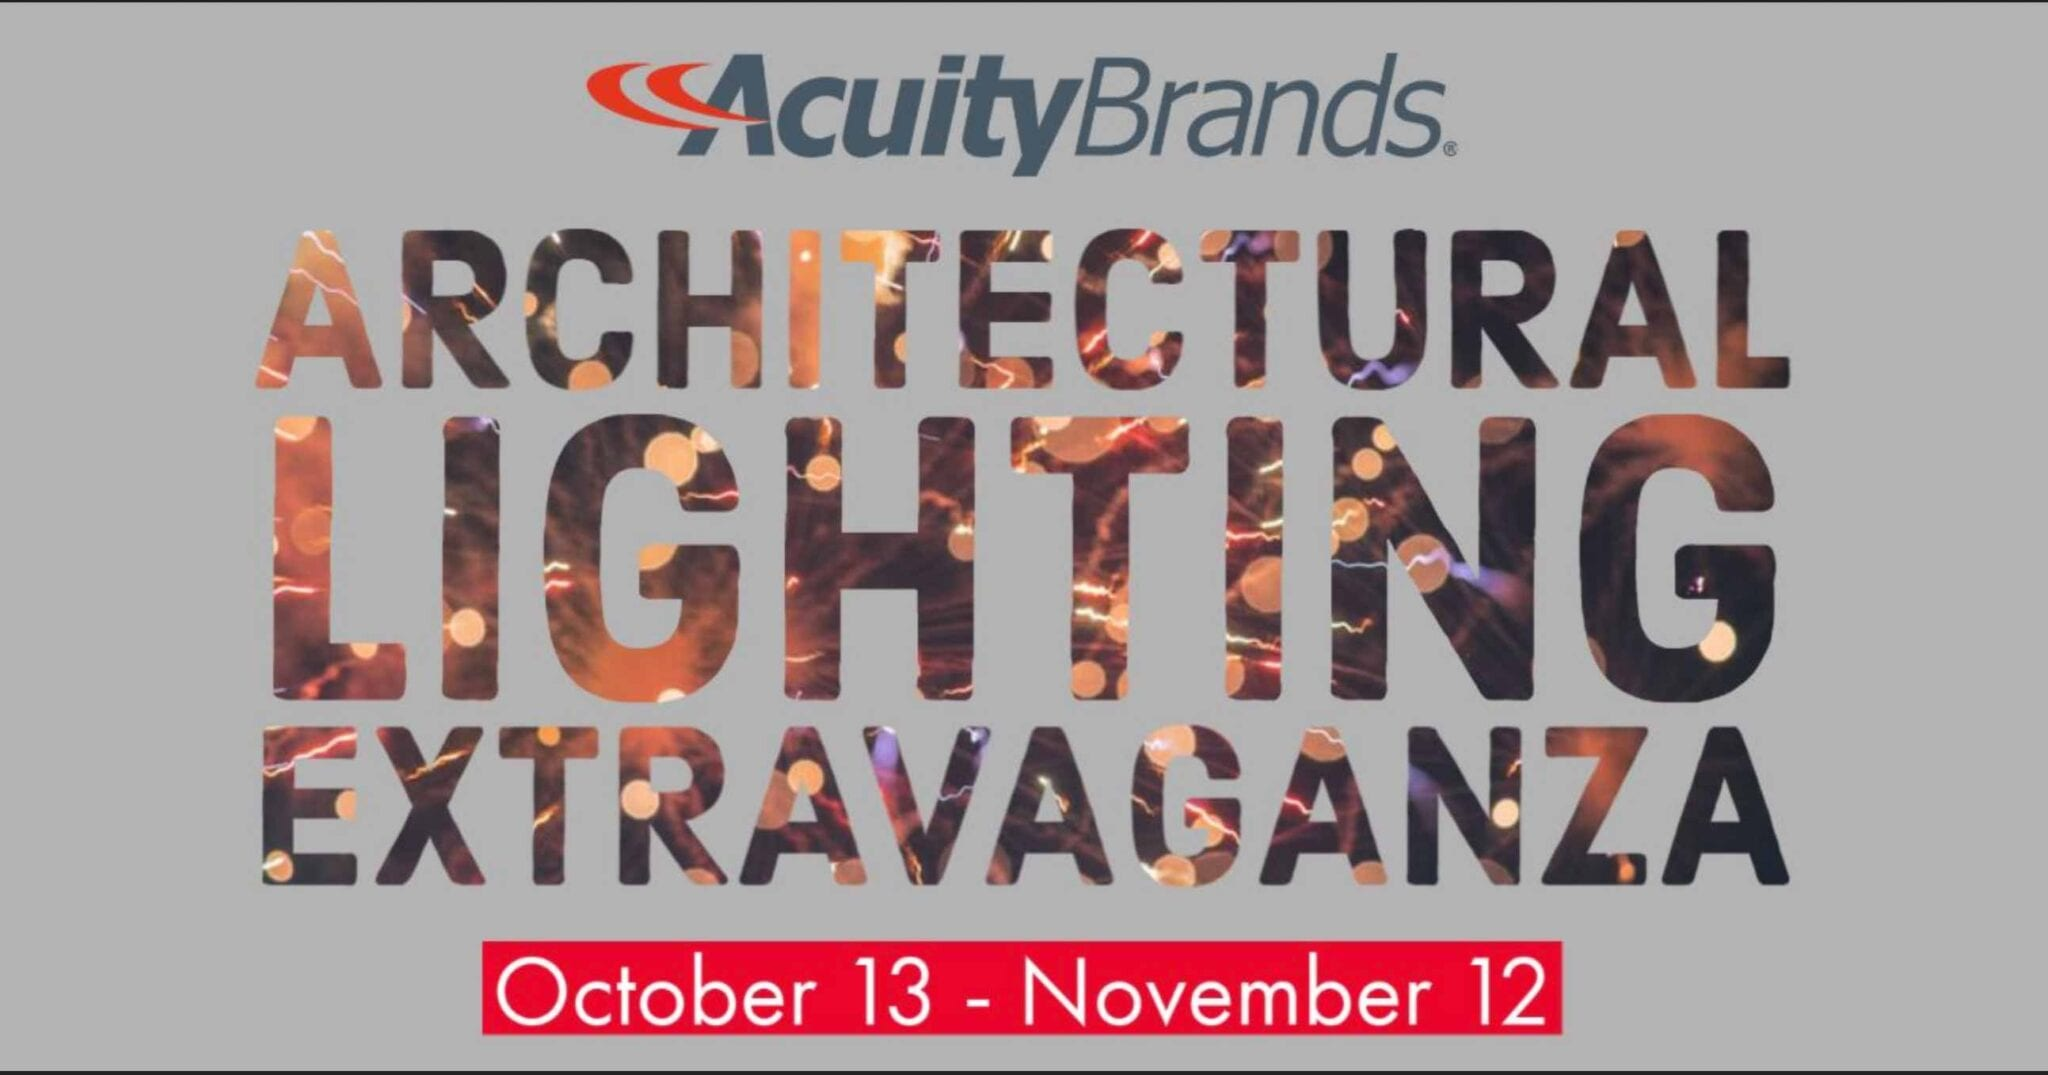 Acuity Brands Architectural Lighting Extravaganza